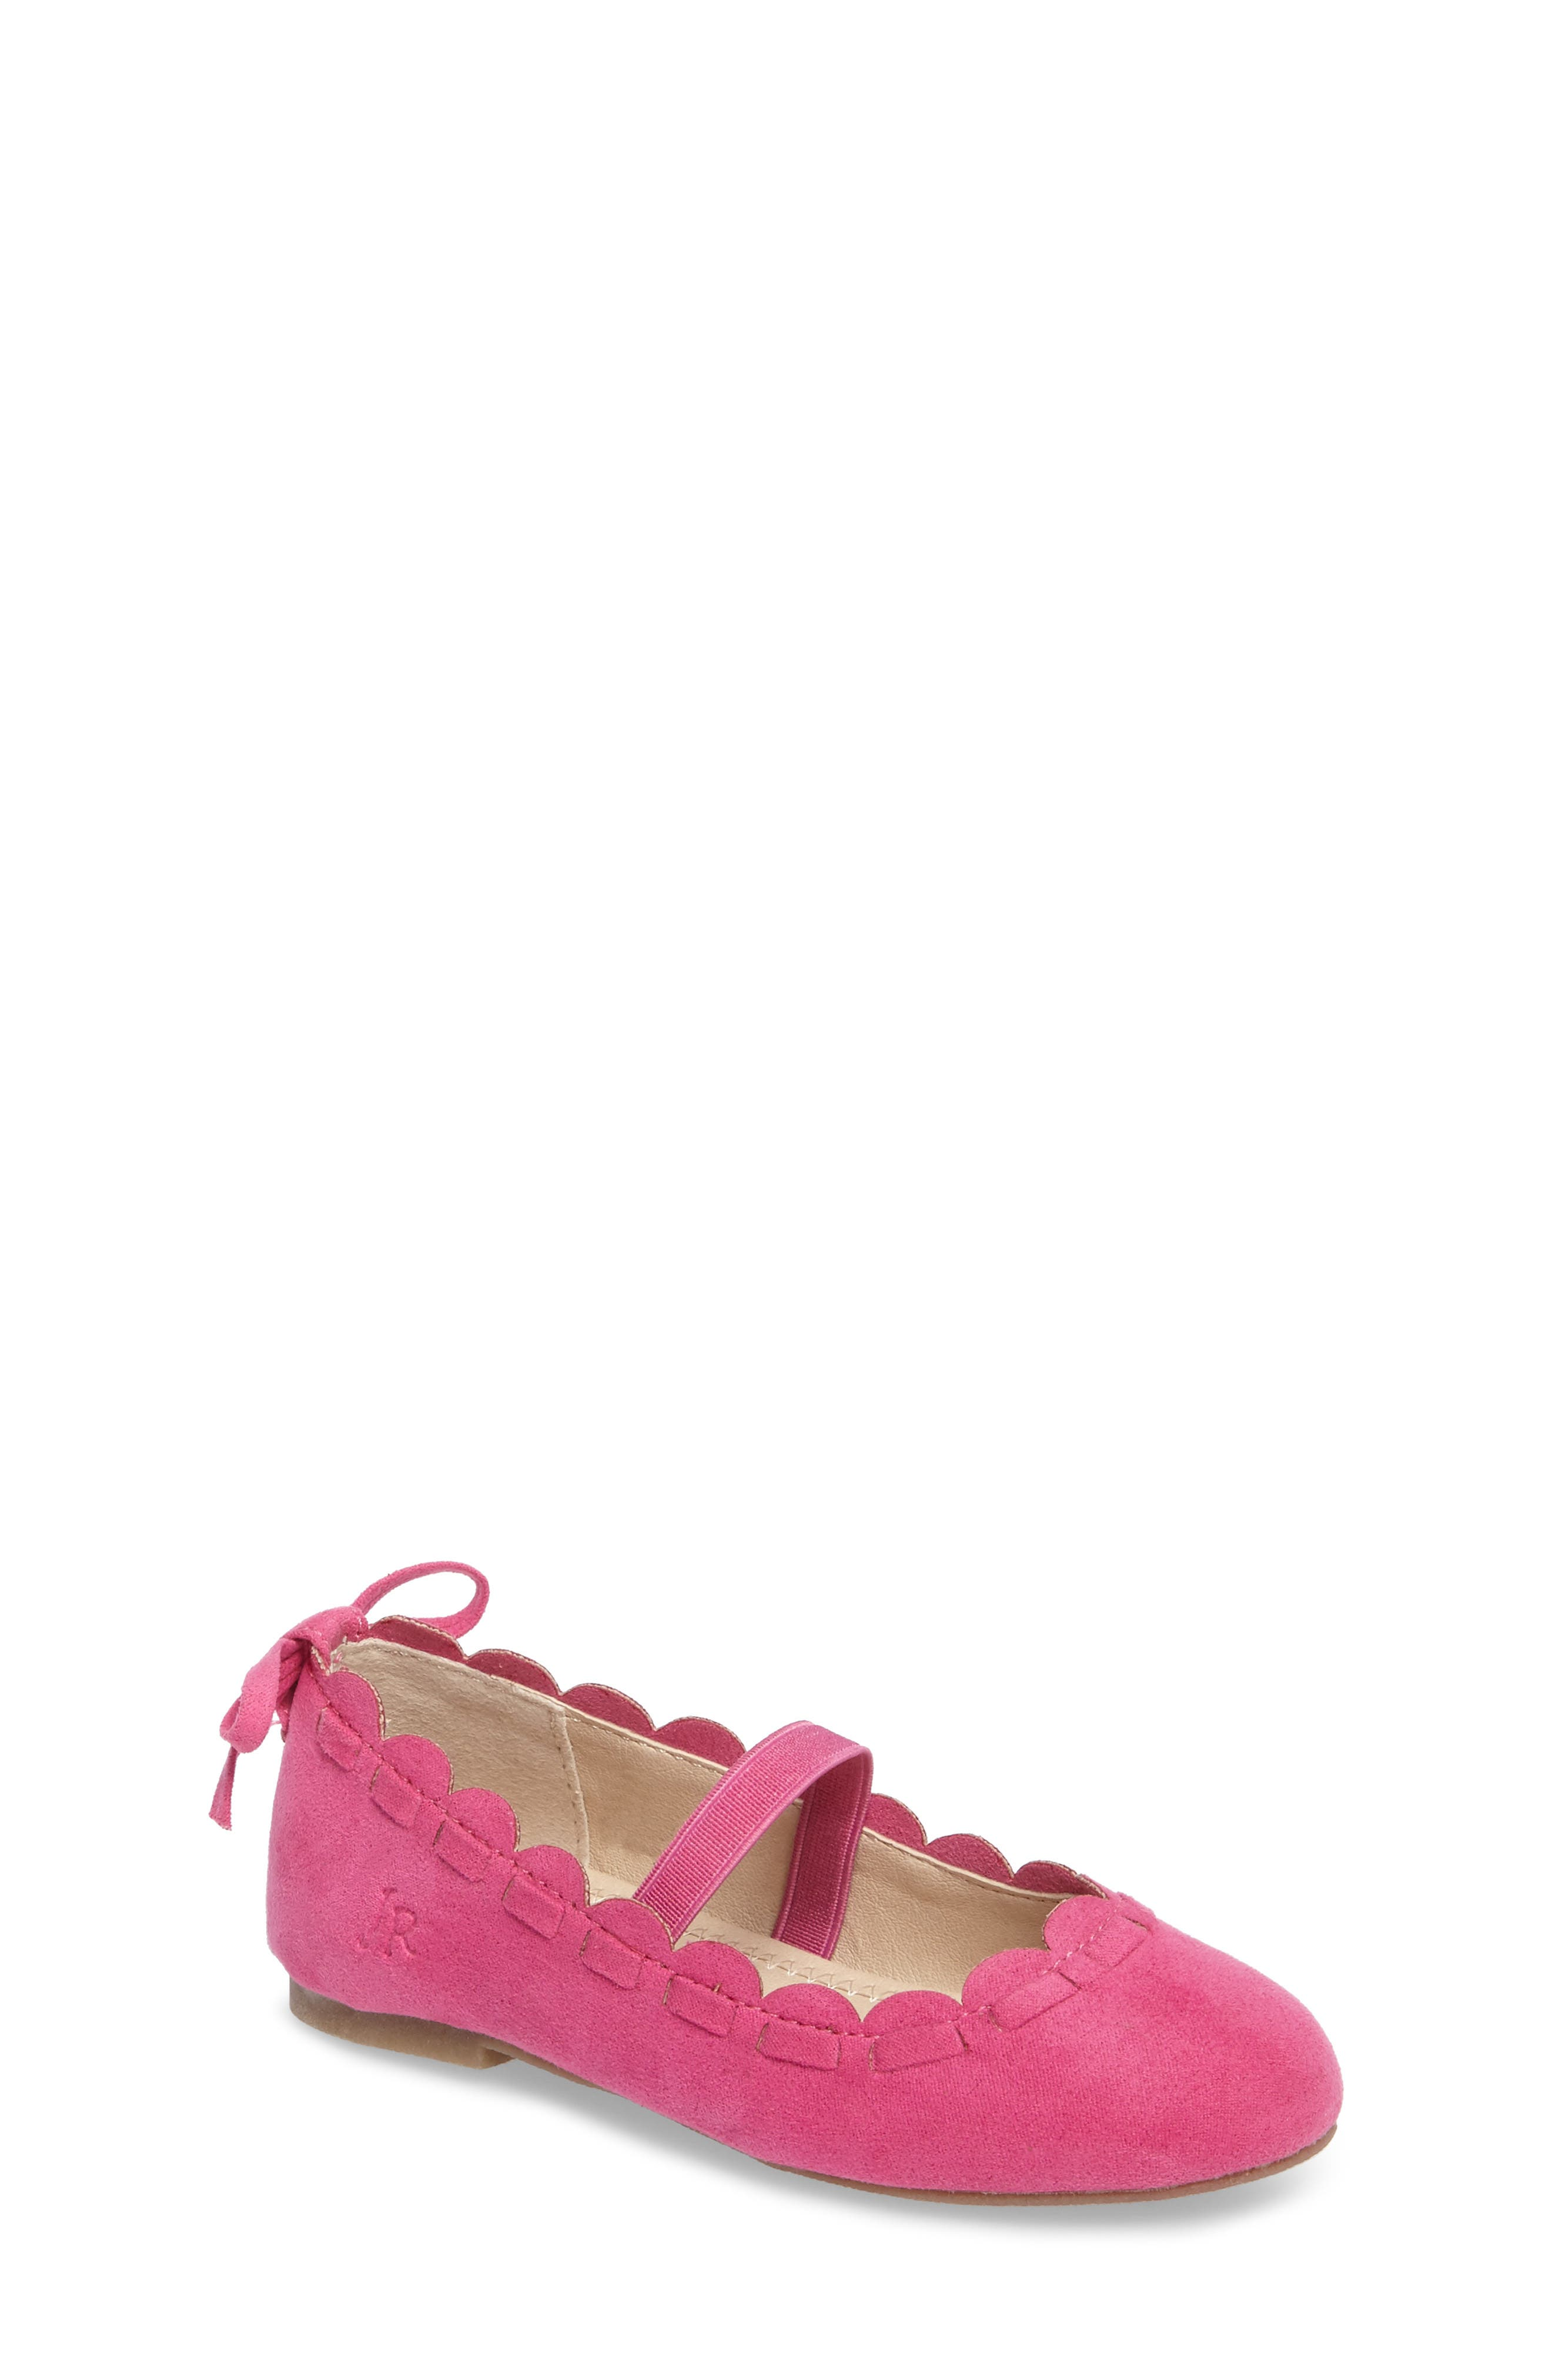 Alternate Image 1 Selected - Jack Rogers Little Miss Lucie Scalloped Mary Jane Flat (Walker & Toddler)